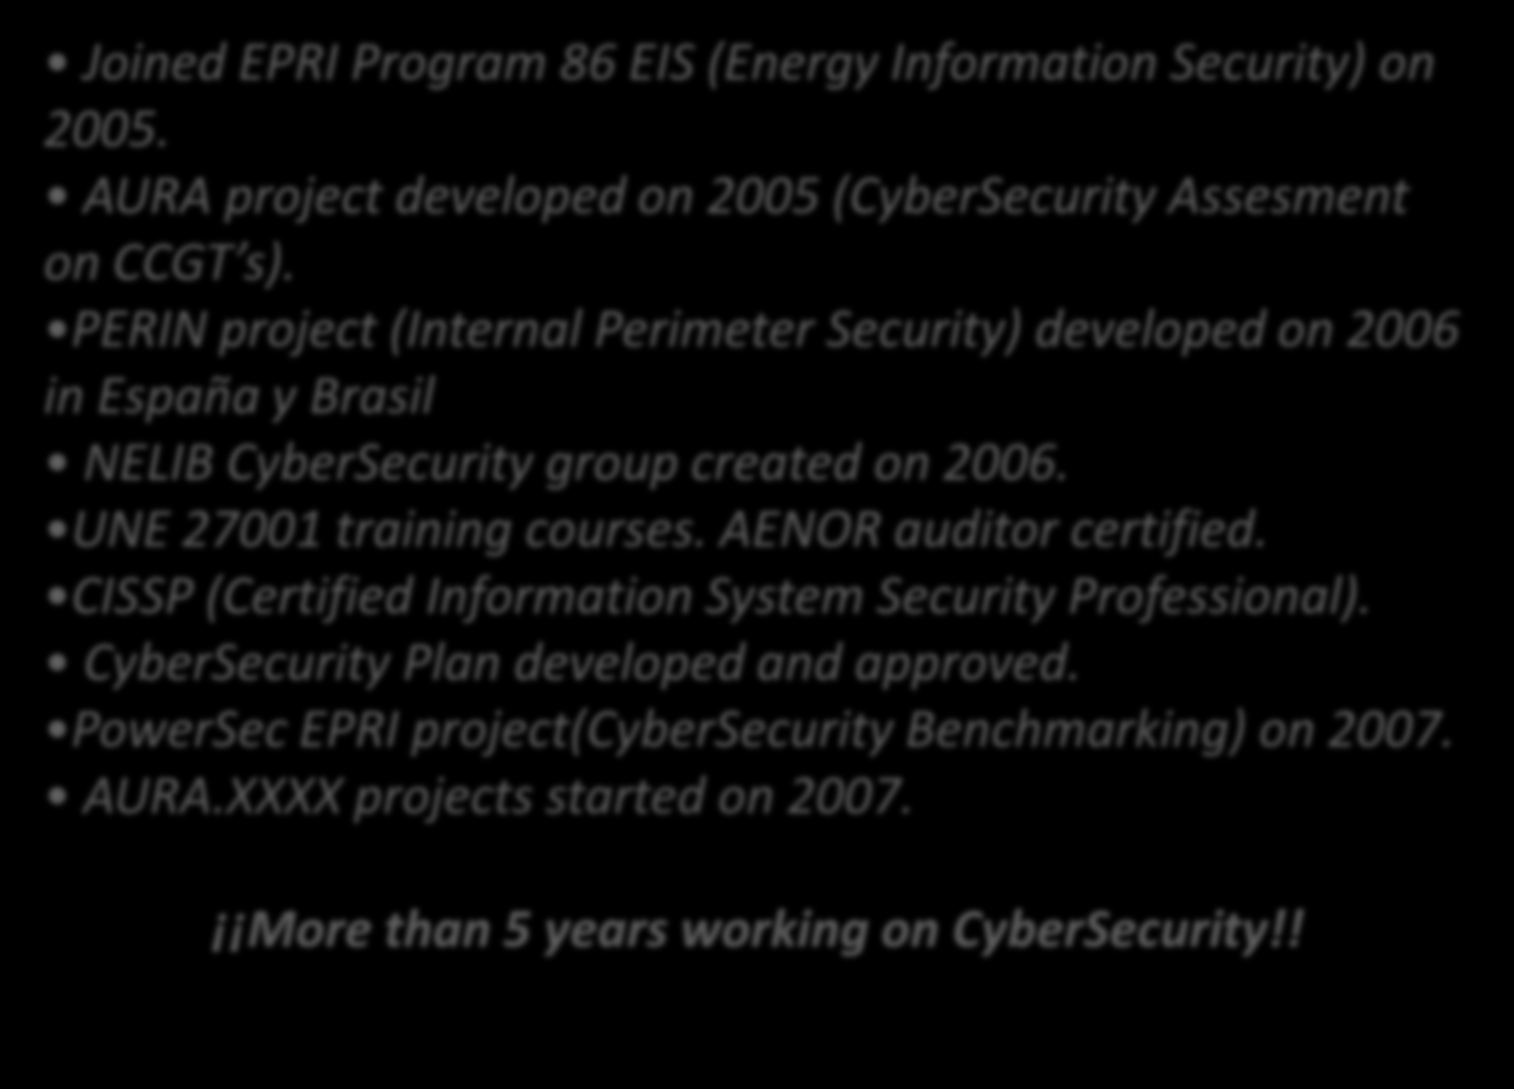 CHRONOLOGY Joined EPRI Program 86 EIS (Energy Information Security) on 2005. AURA project developed on 2005 (CyberSecurity Assesment on CCGT s).